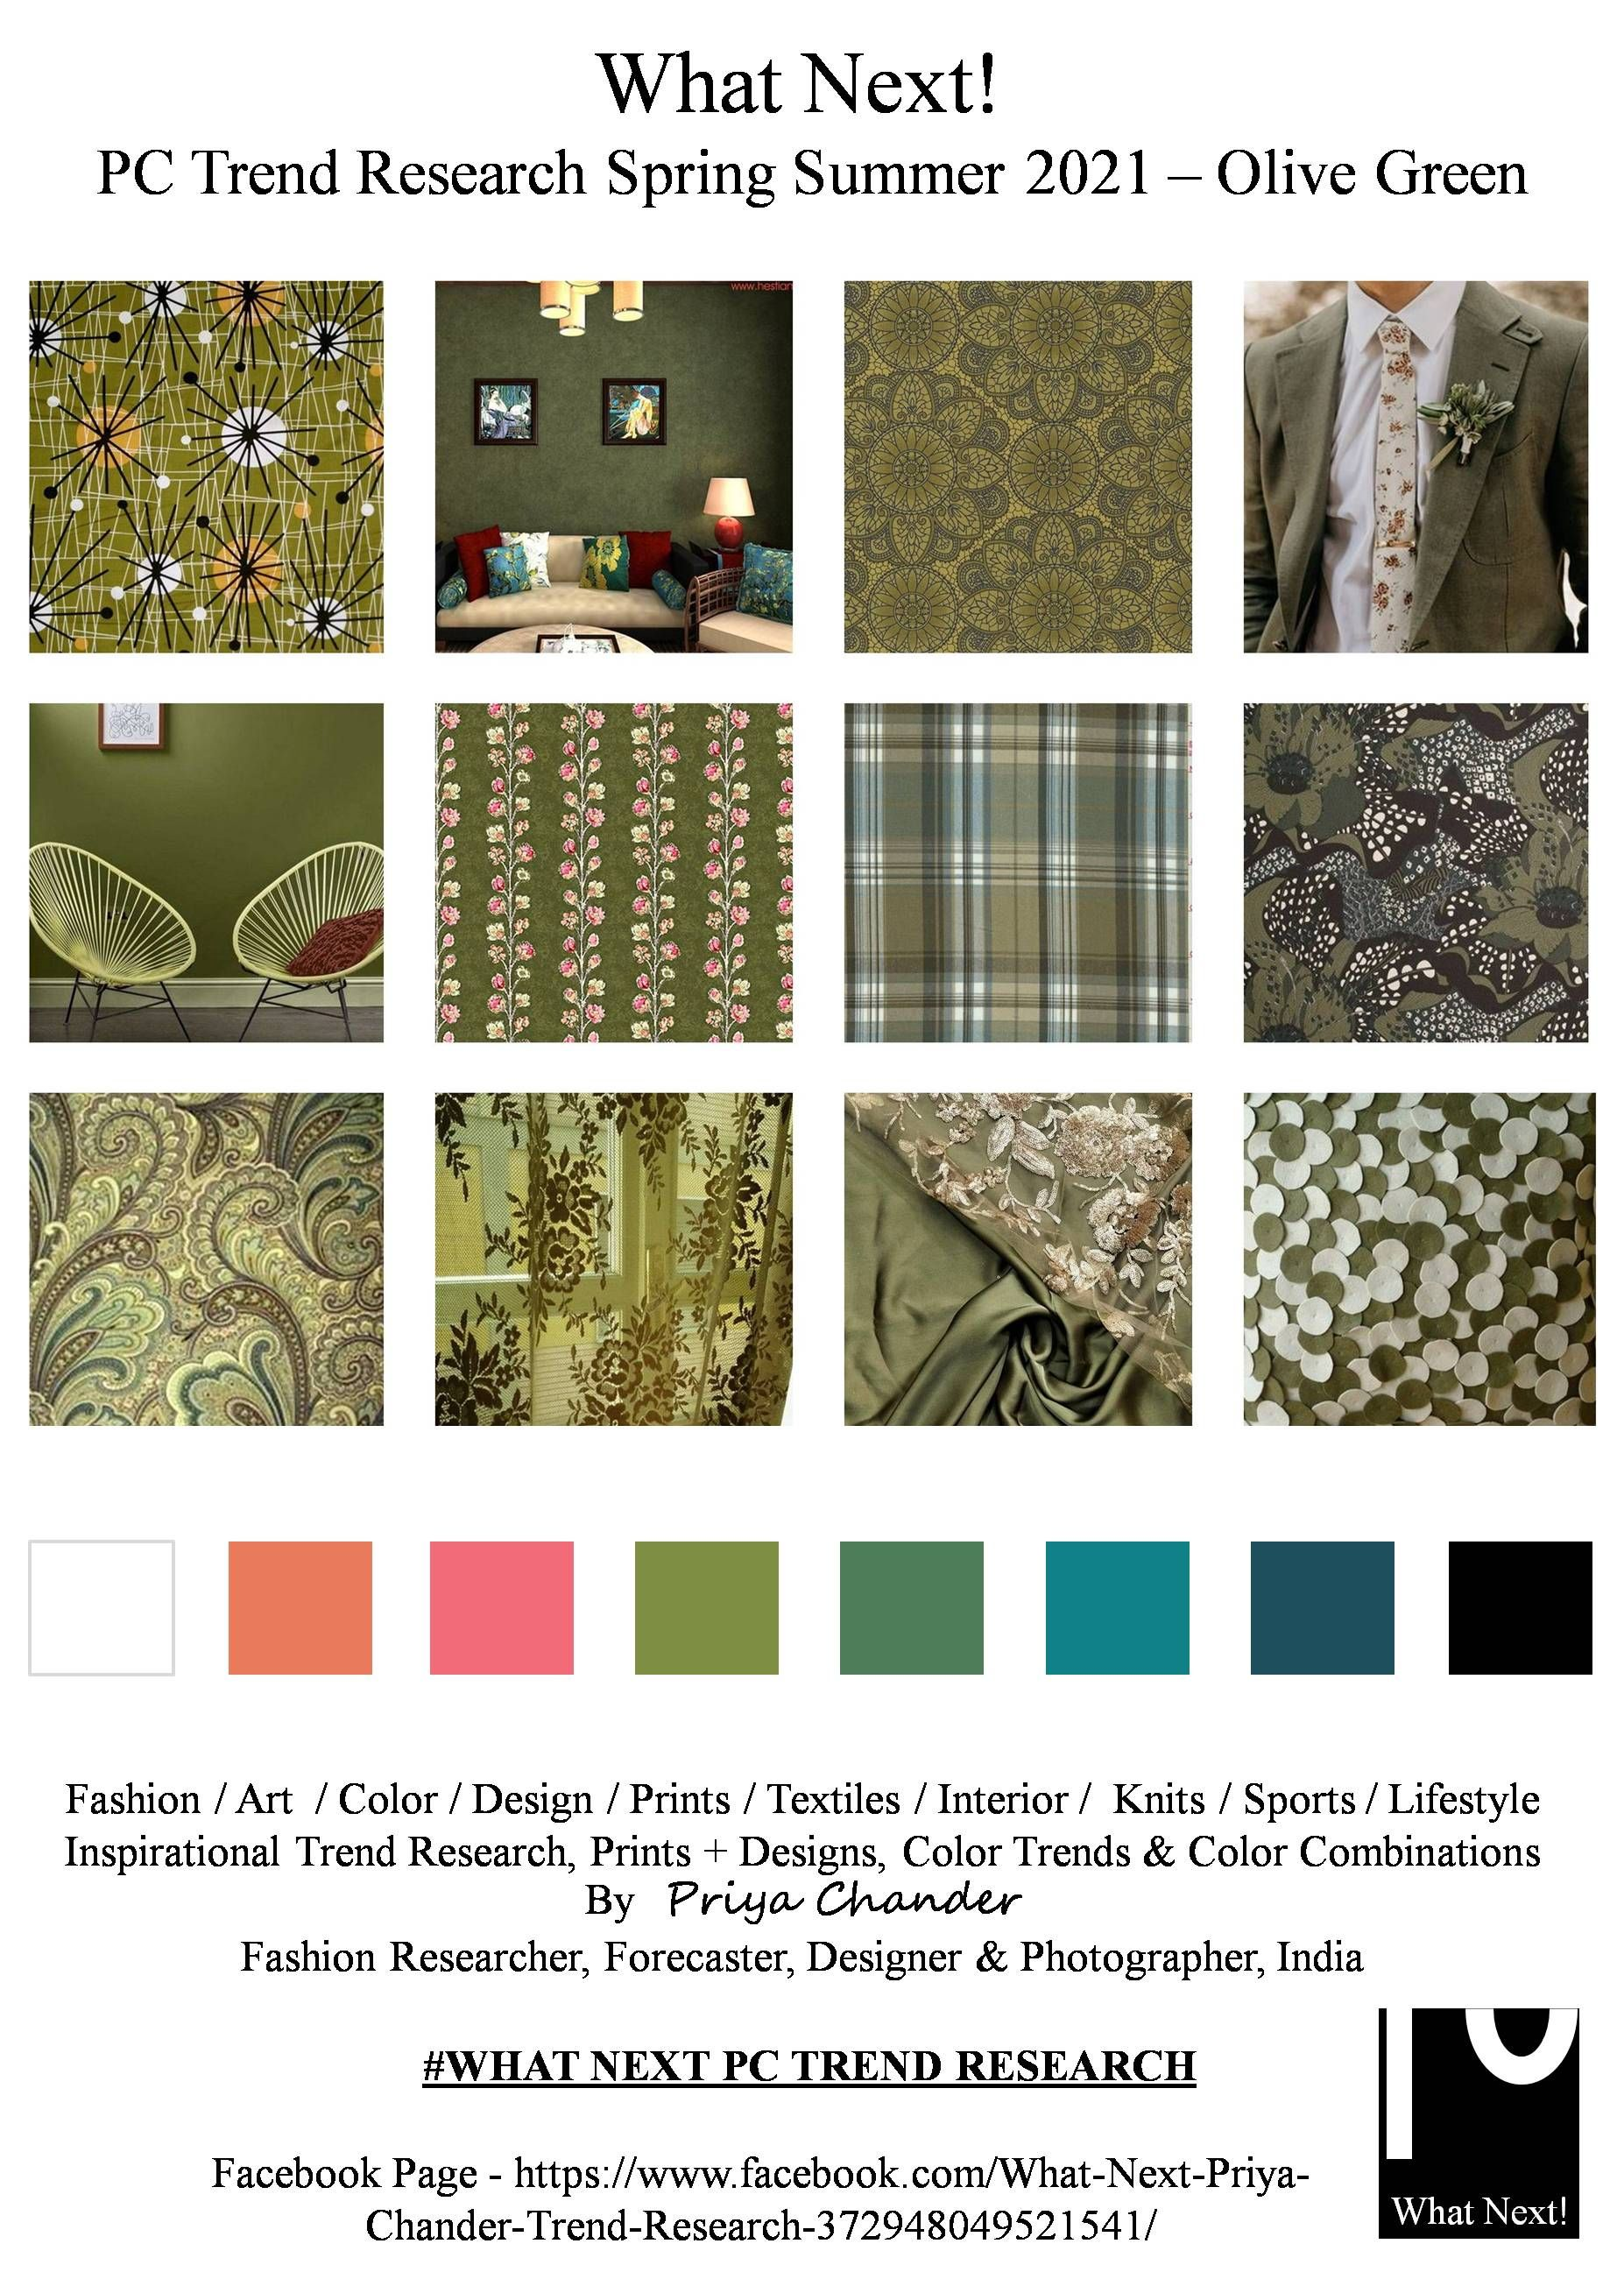 #Olivegreen #olive #green #SS2021 #WhatNextPCTrendResearch